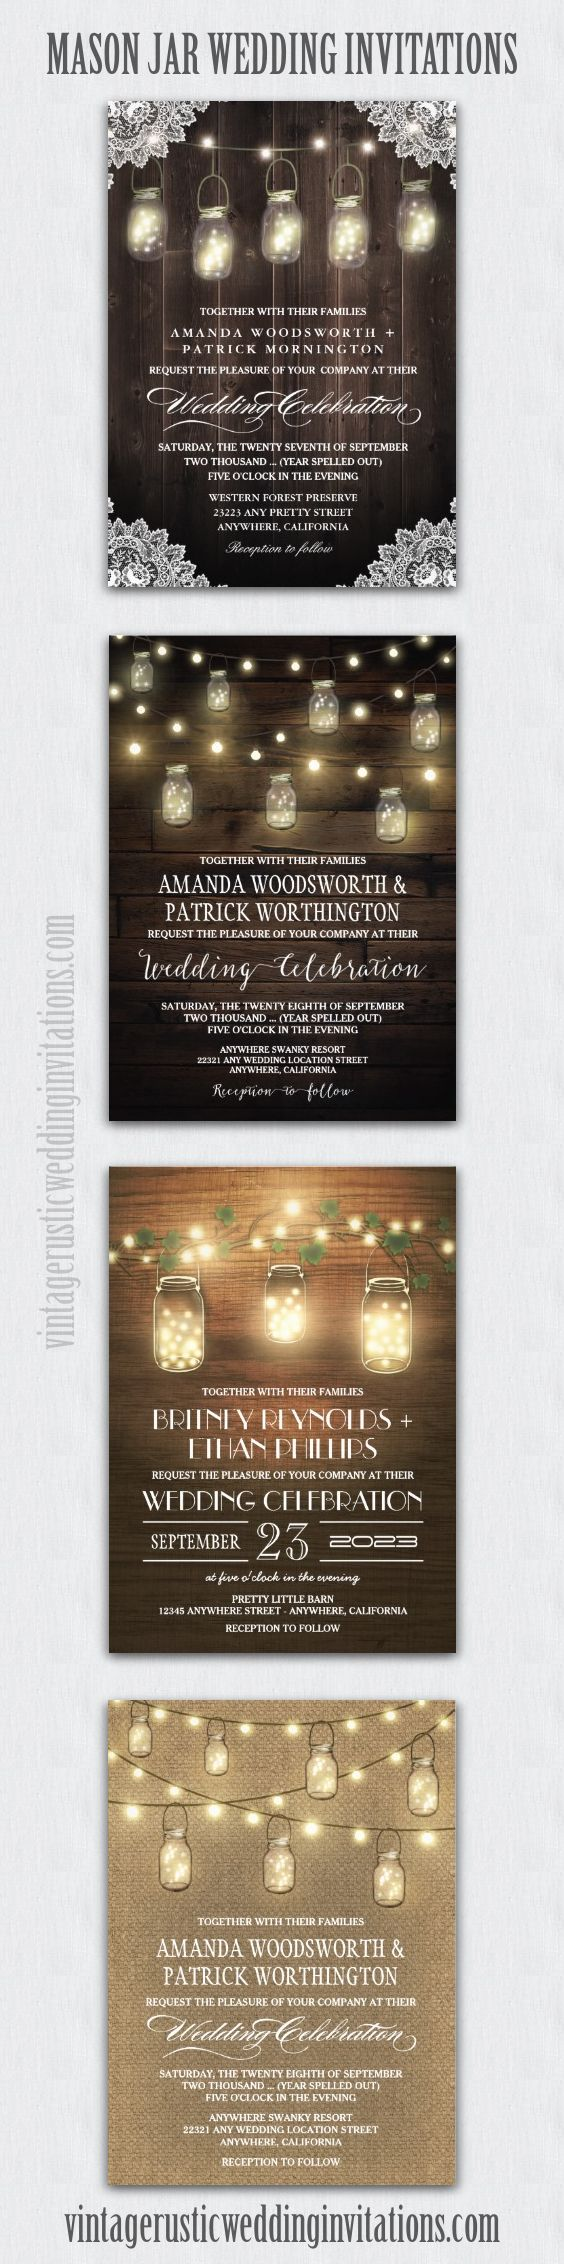 Mason Jar Wedding Invitation For Rustic Country Wedding Theme